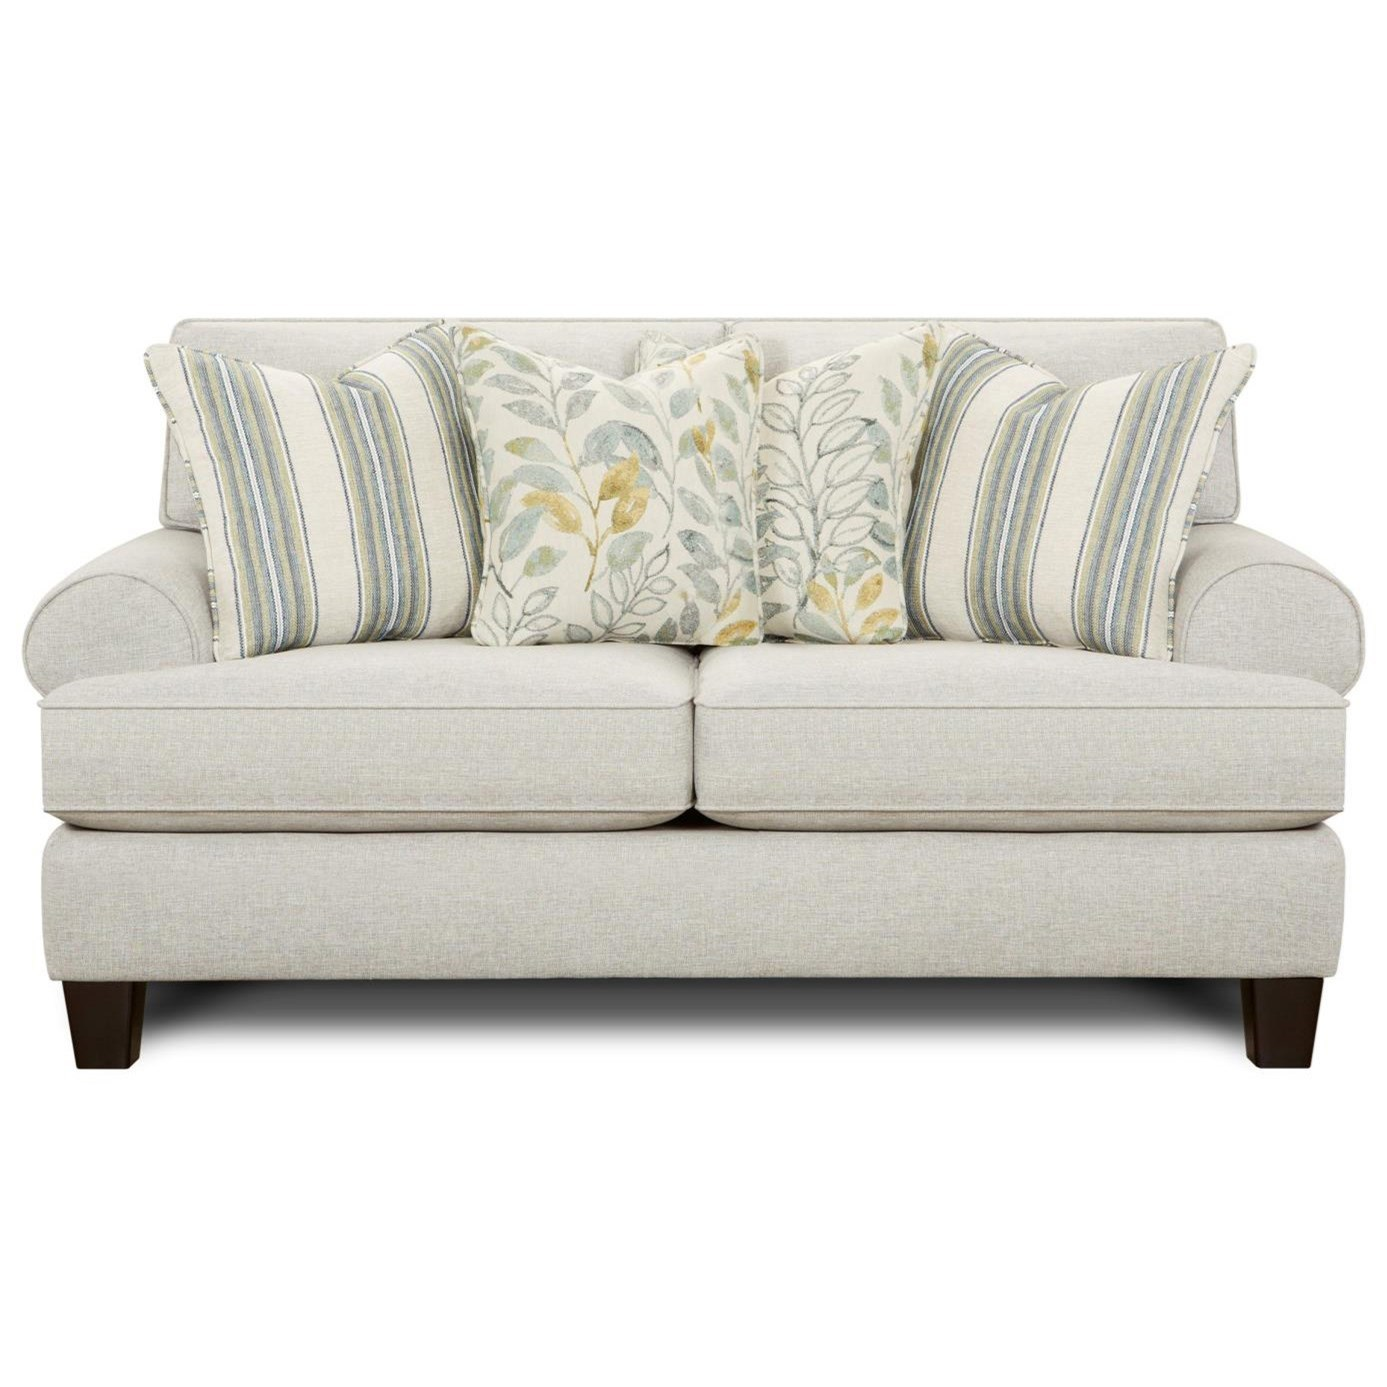 4200 Loveseat by Fusion Furniture at Furniture Superstore - Rochester, MN